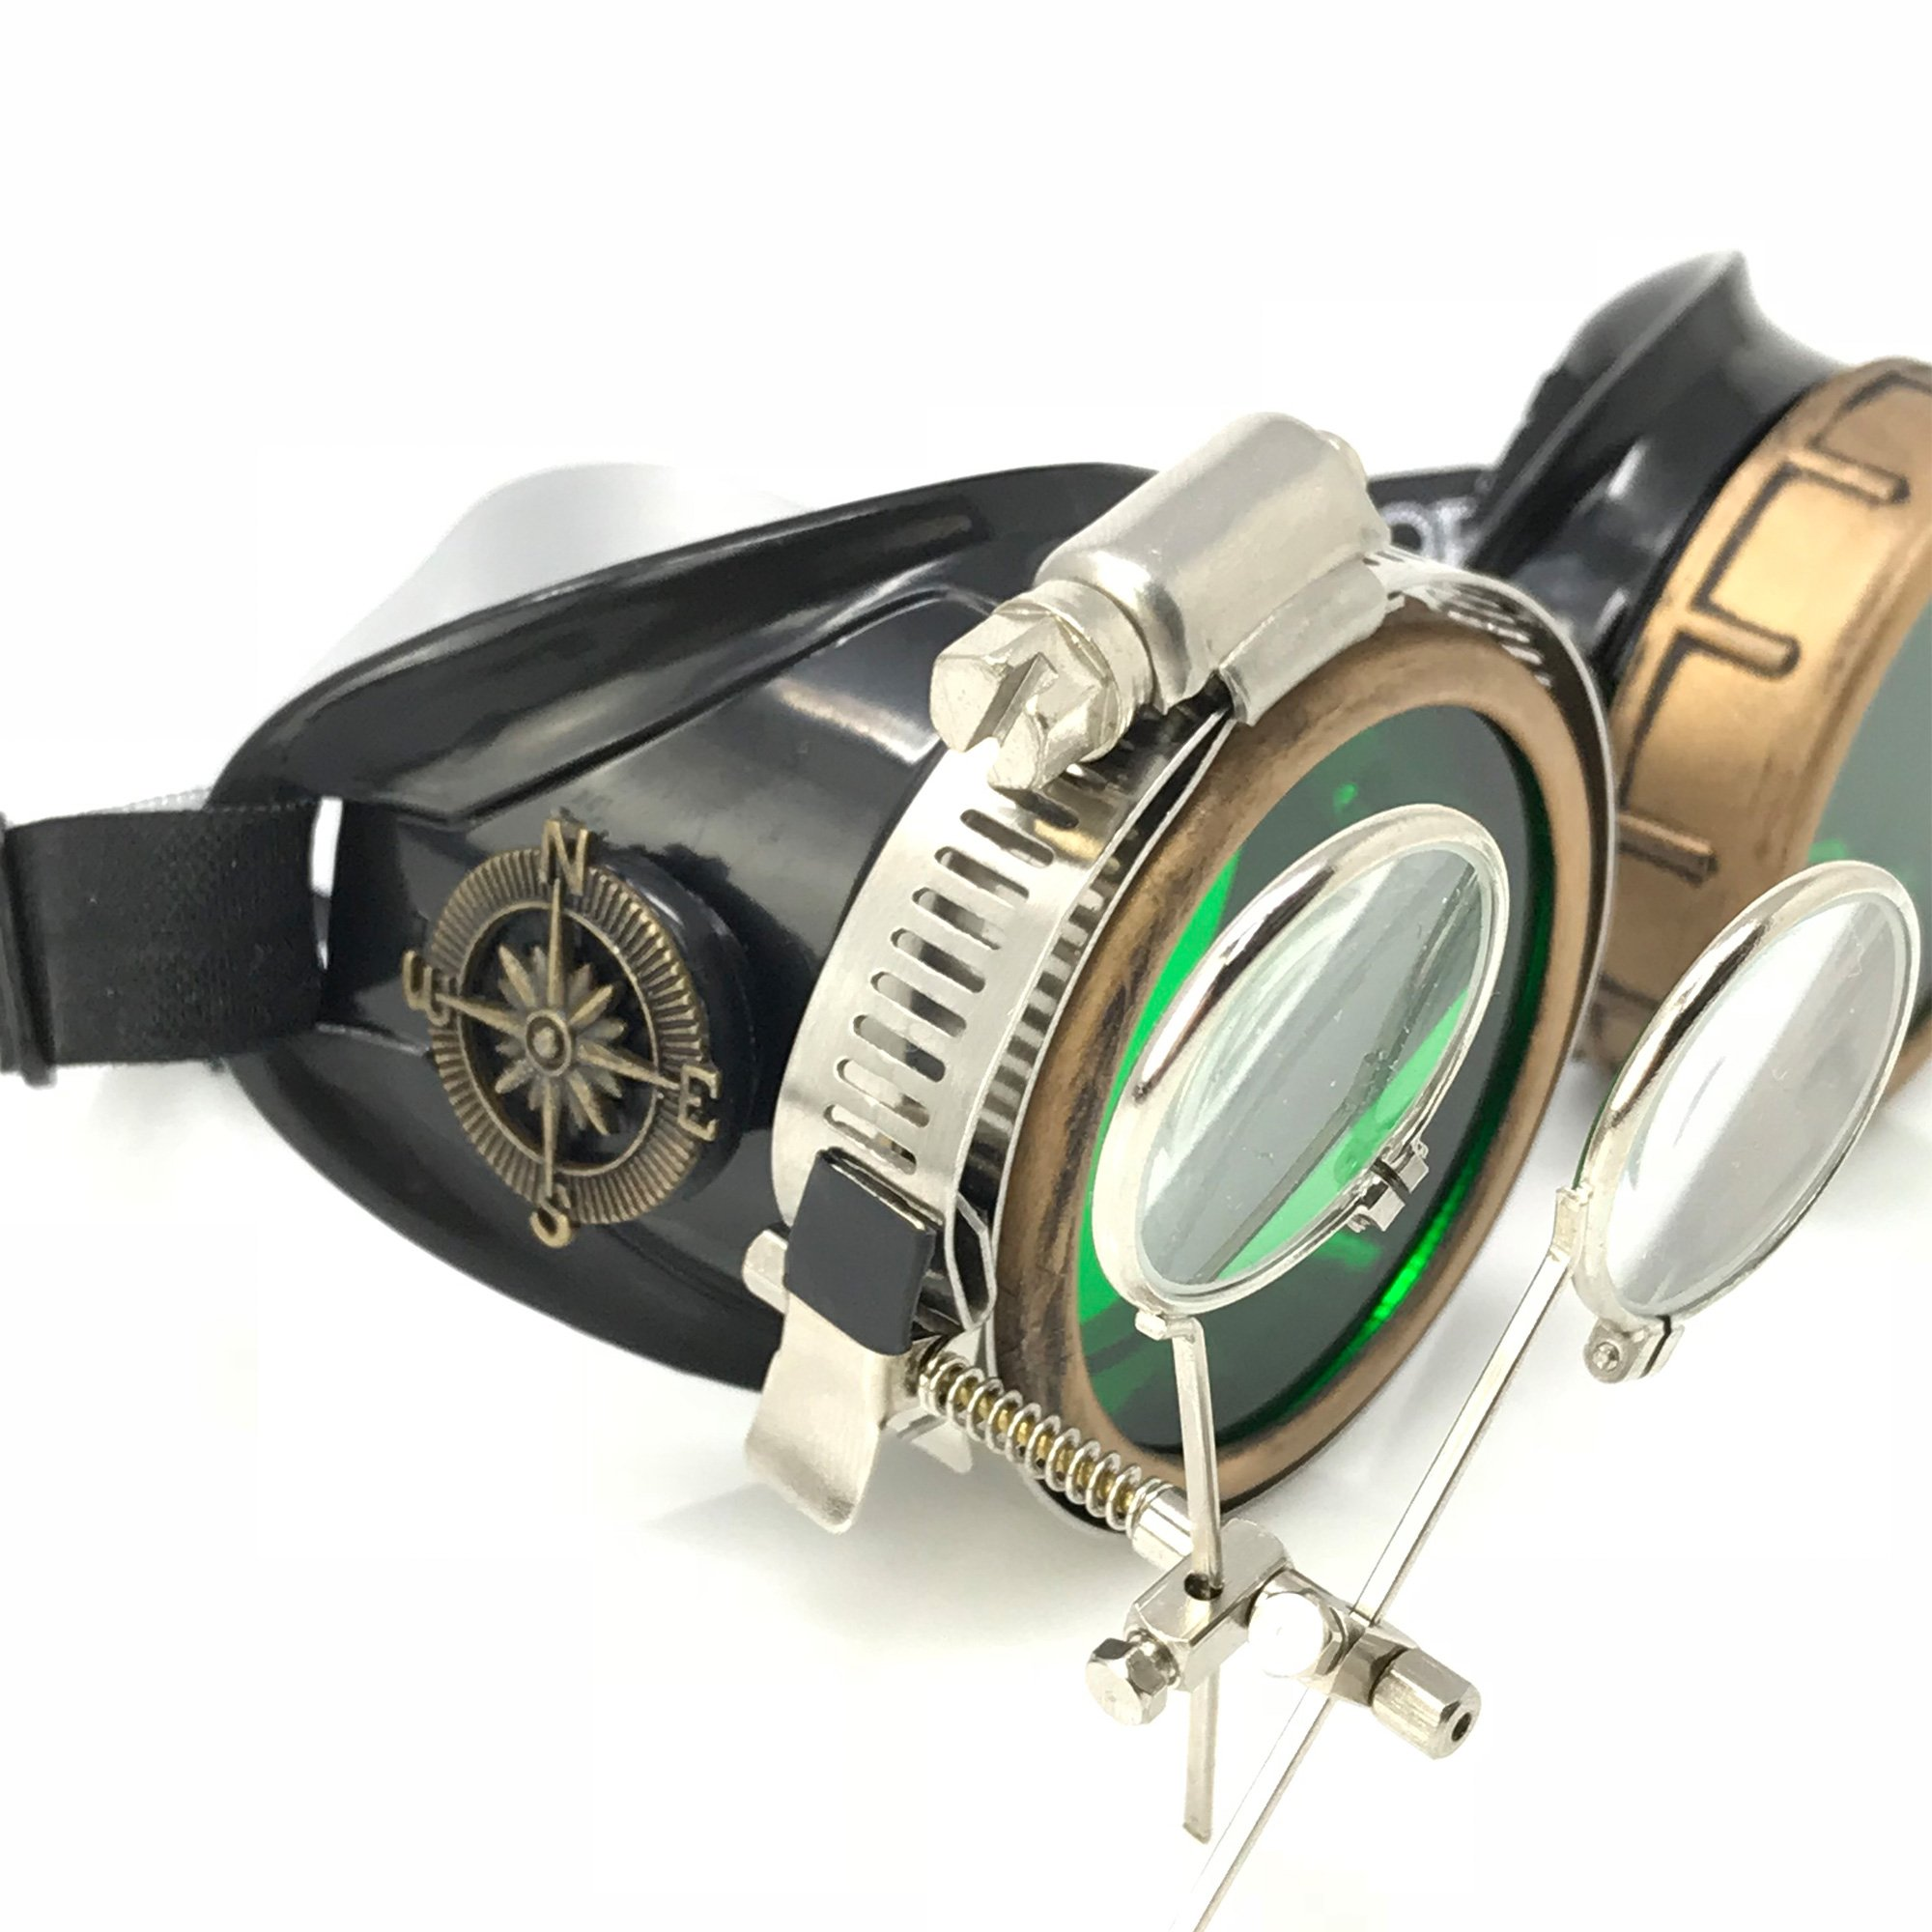 Steampunk Victorian Style Goggles with Compass Design, Emerald Green Lenses & Ocular Loupe by UMBRELLALABORATORY (Image #6)